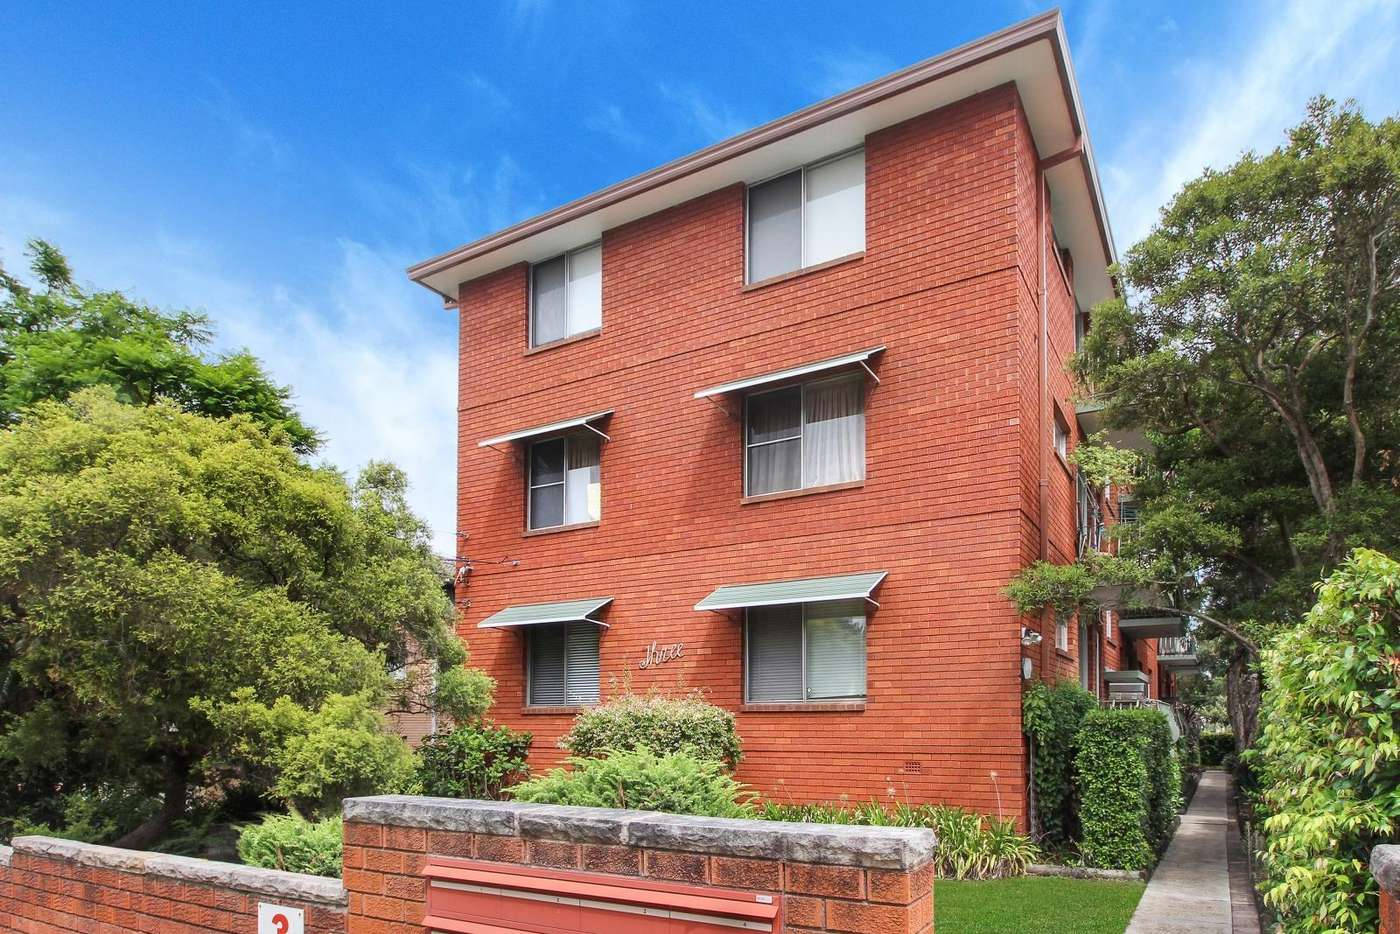 Main view of Homely apartment listing, 11/3 Riverview Street, West Ryde NSW 2114